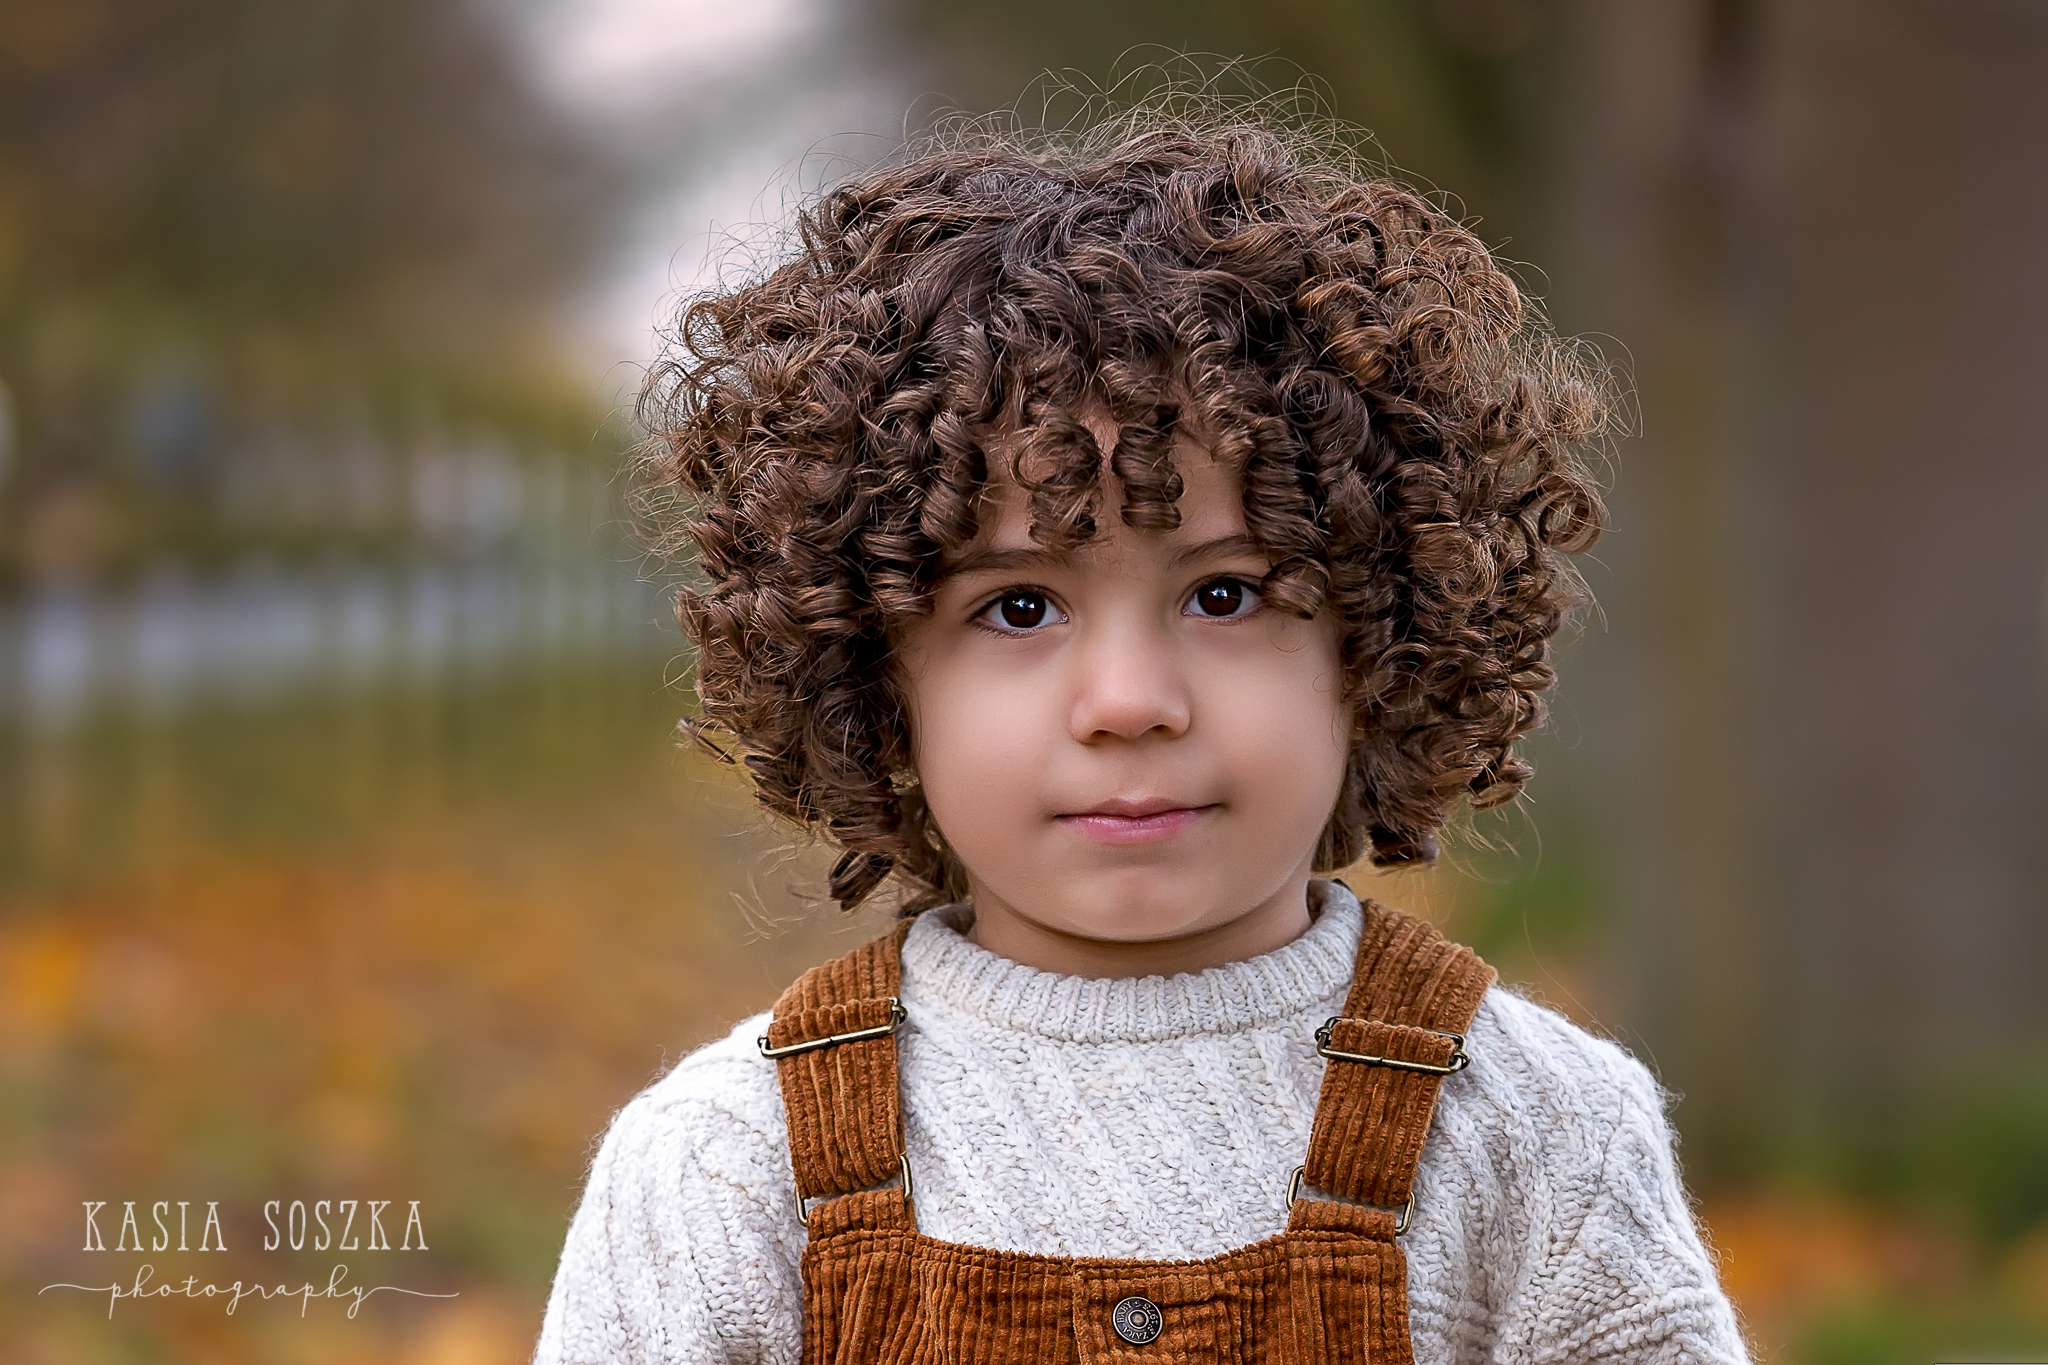 Leeds outdoor child session: portrait of a cute little boy with thick dark curly hair.